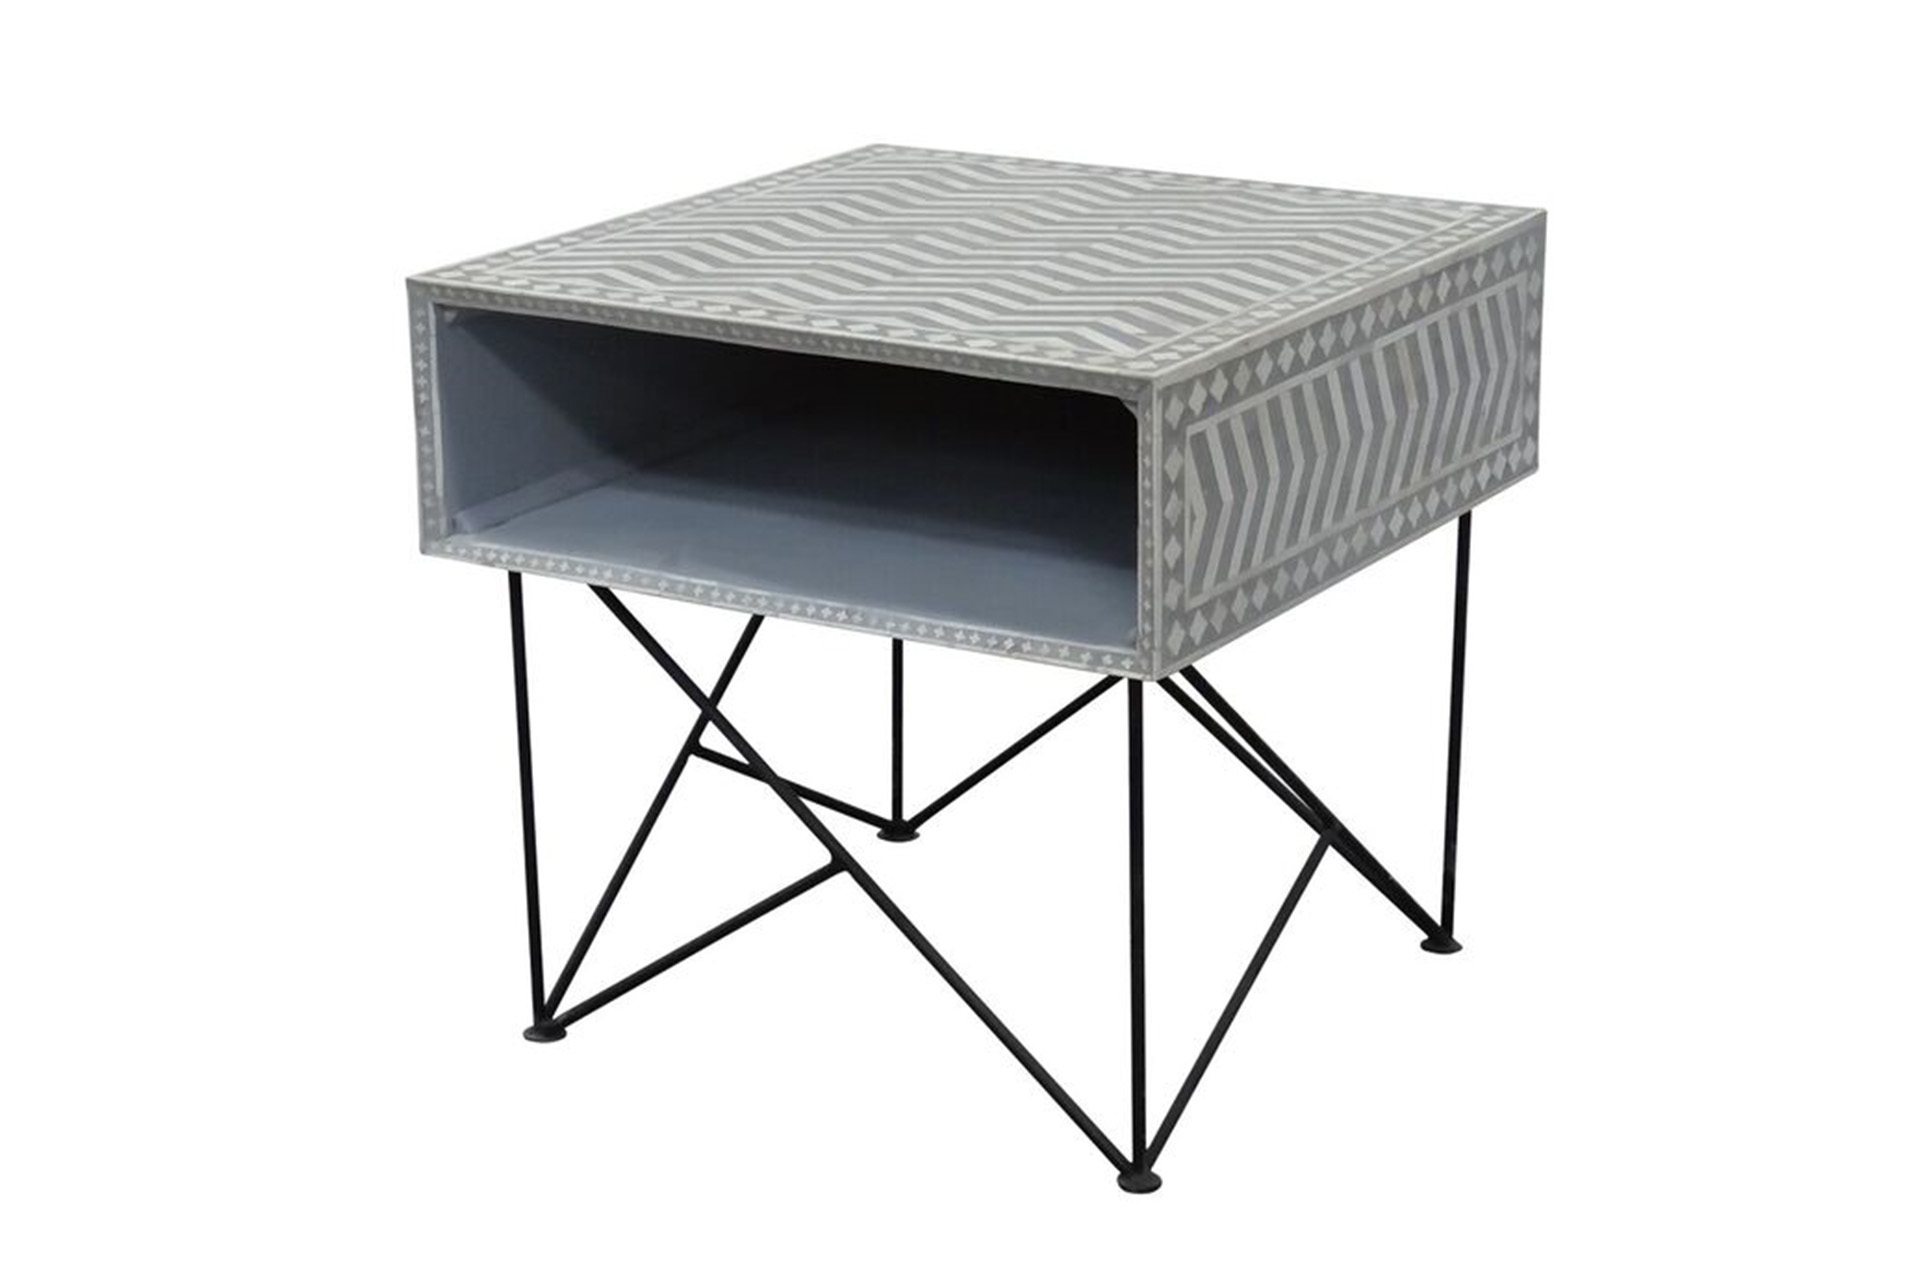 Bone Inlay Recantgle Side Table (Qty: 1) Has Been Successfully Added To  Your Cart.